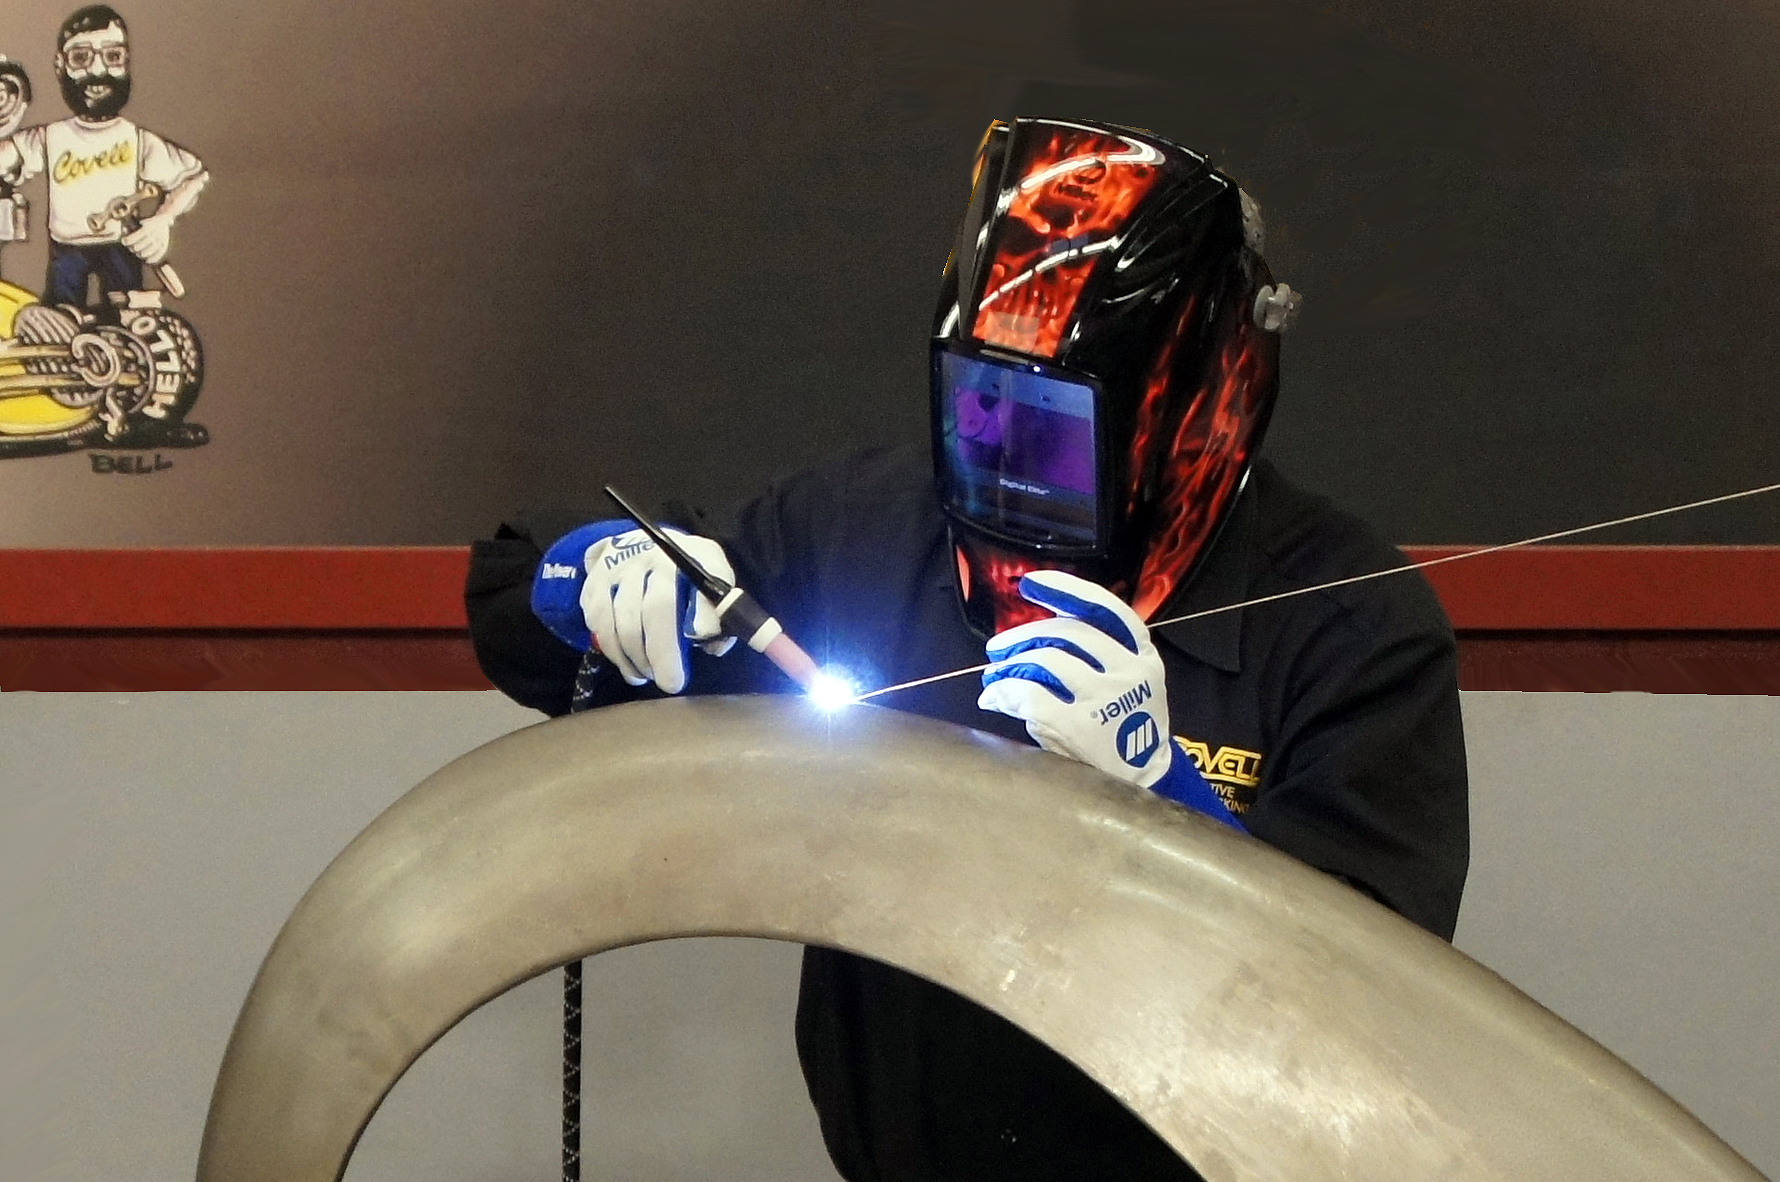 This article touches on some important safety issues related to welding helmets and lenses.